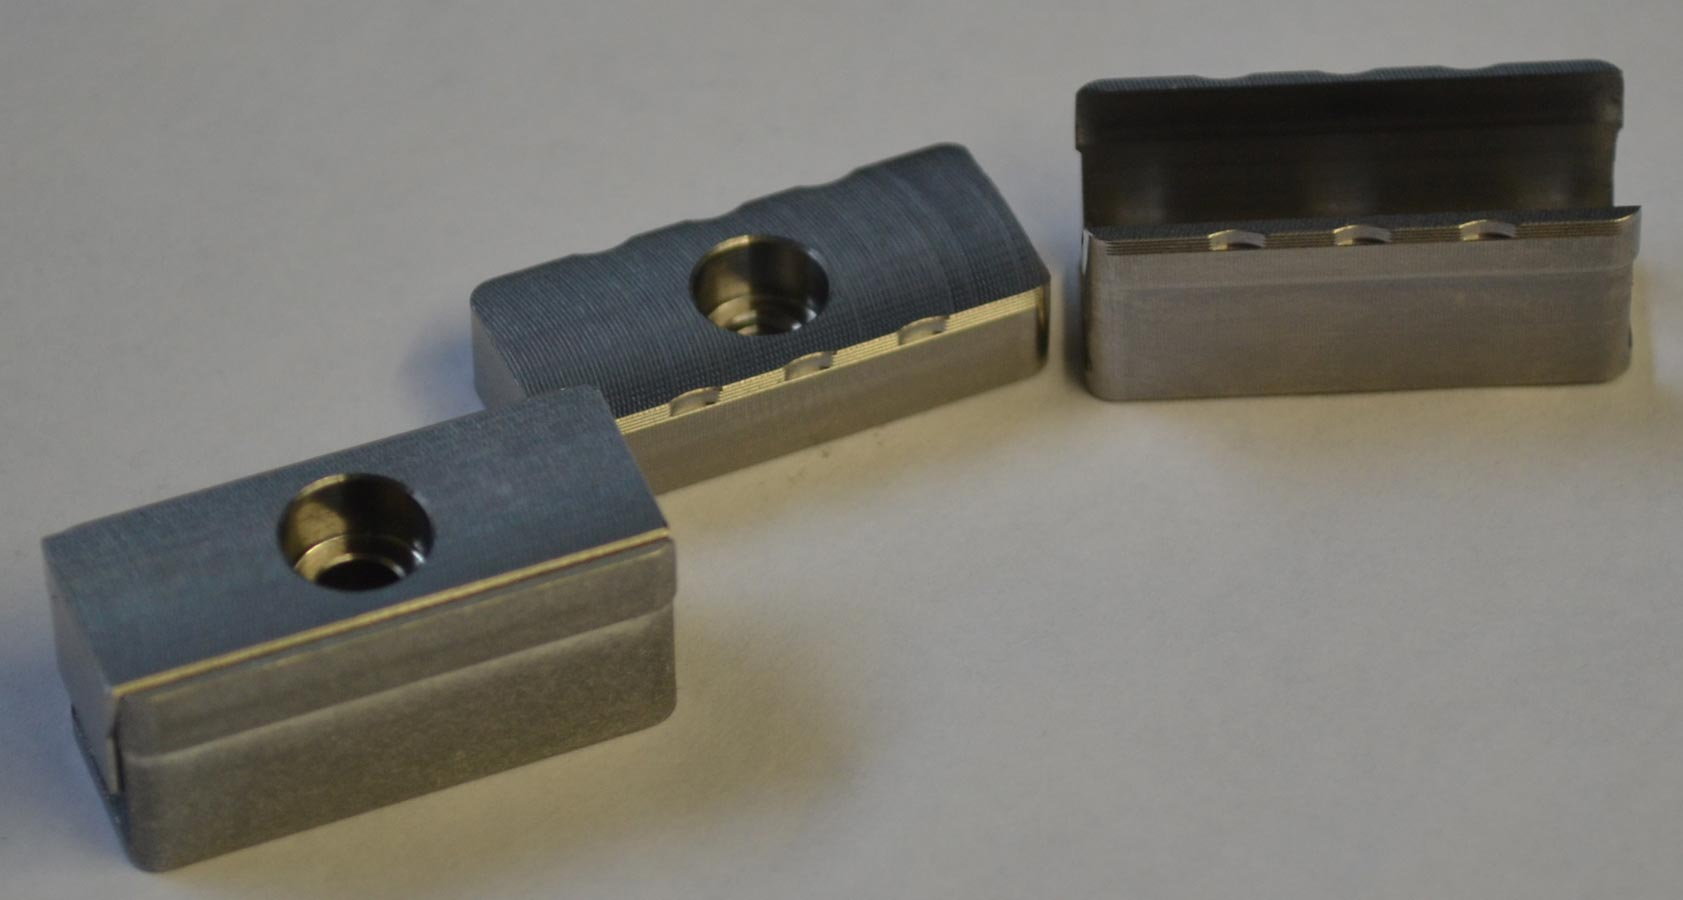 Need advice on a new product I may make, wedge clamps.